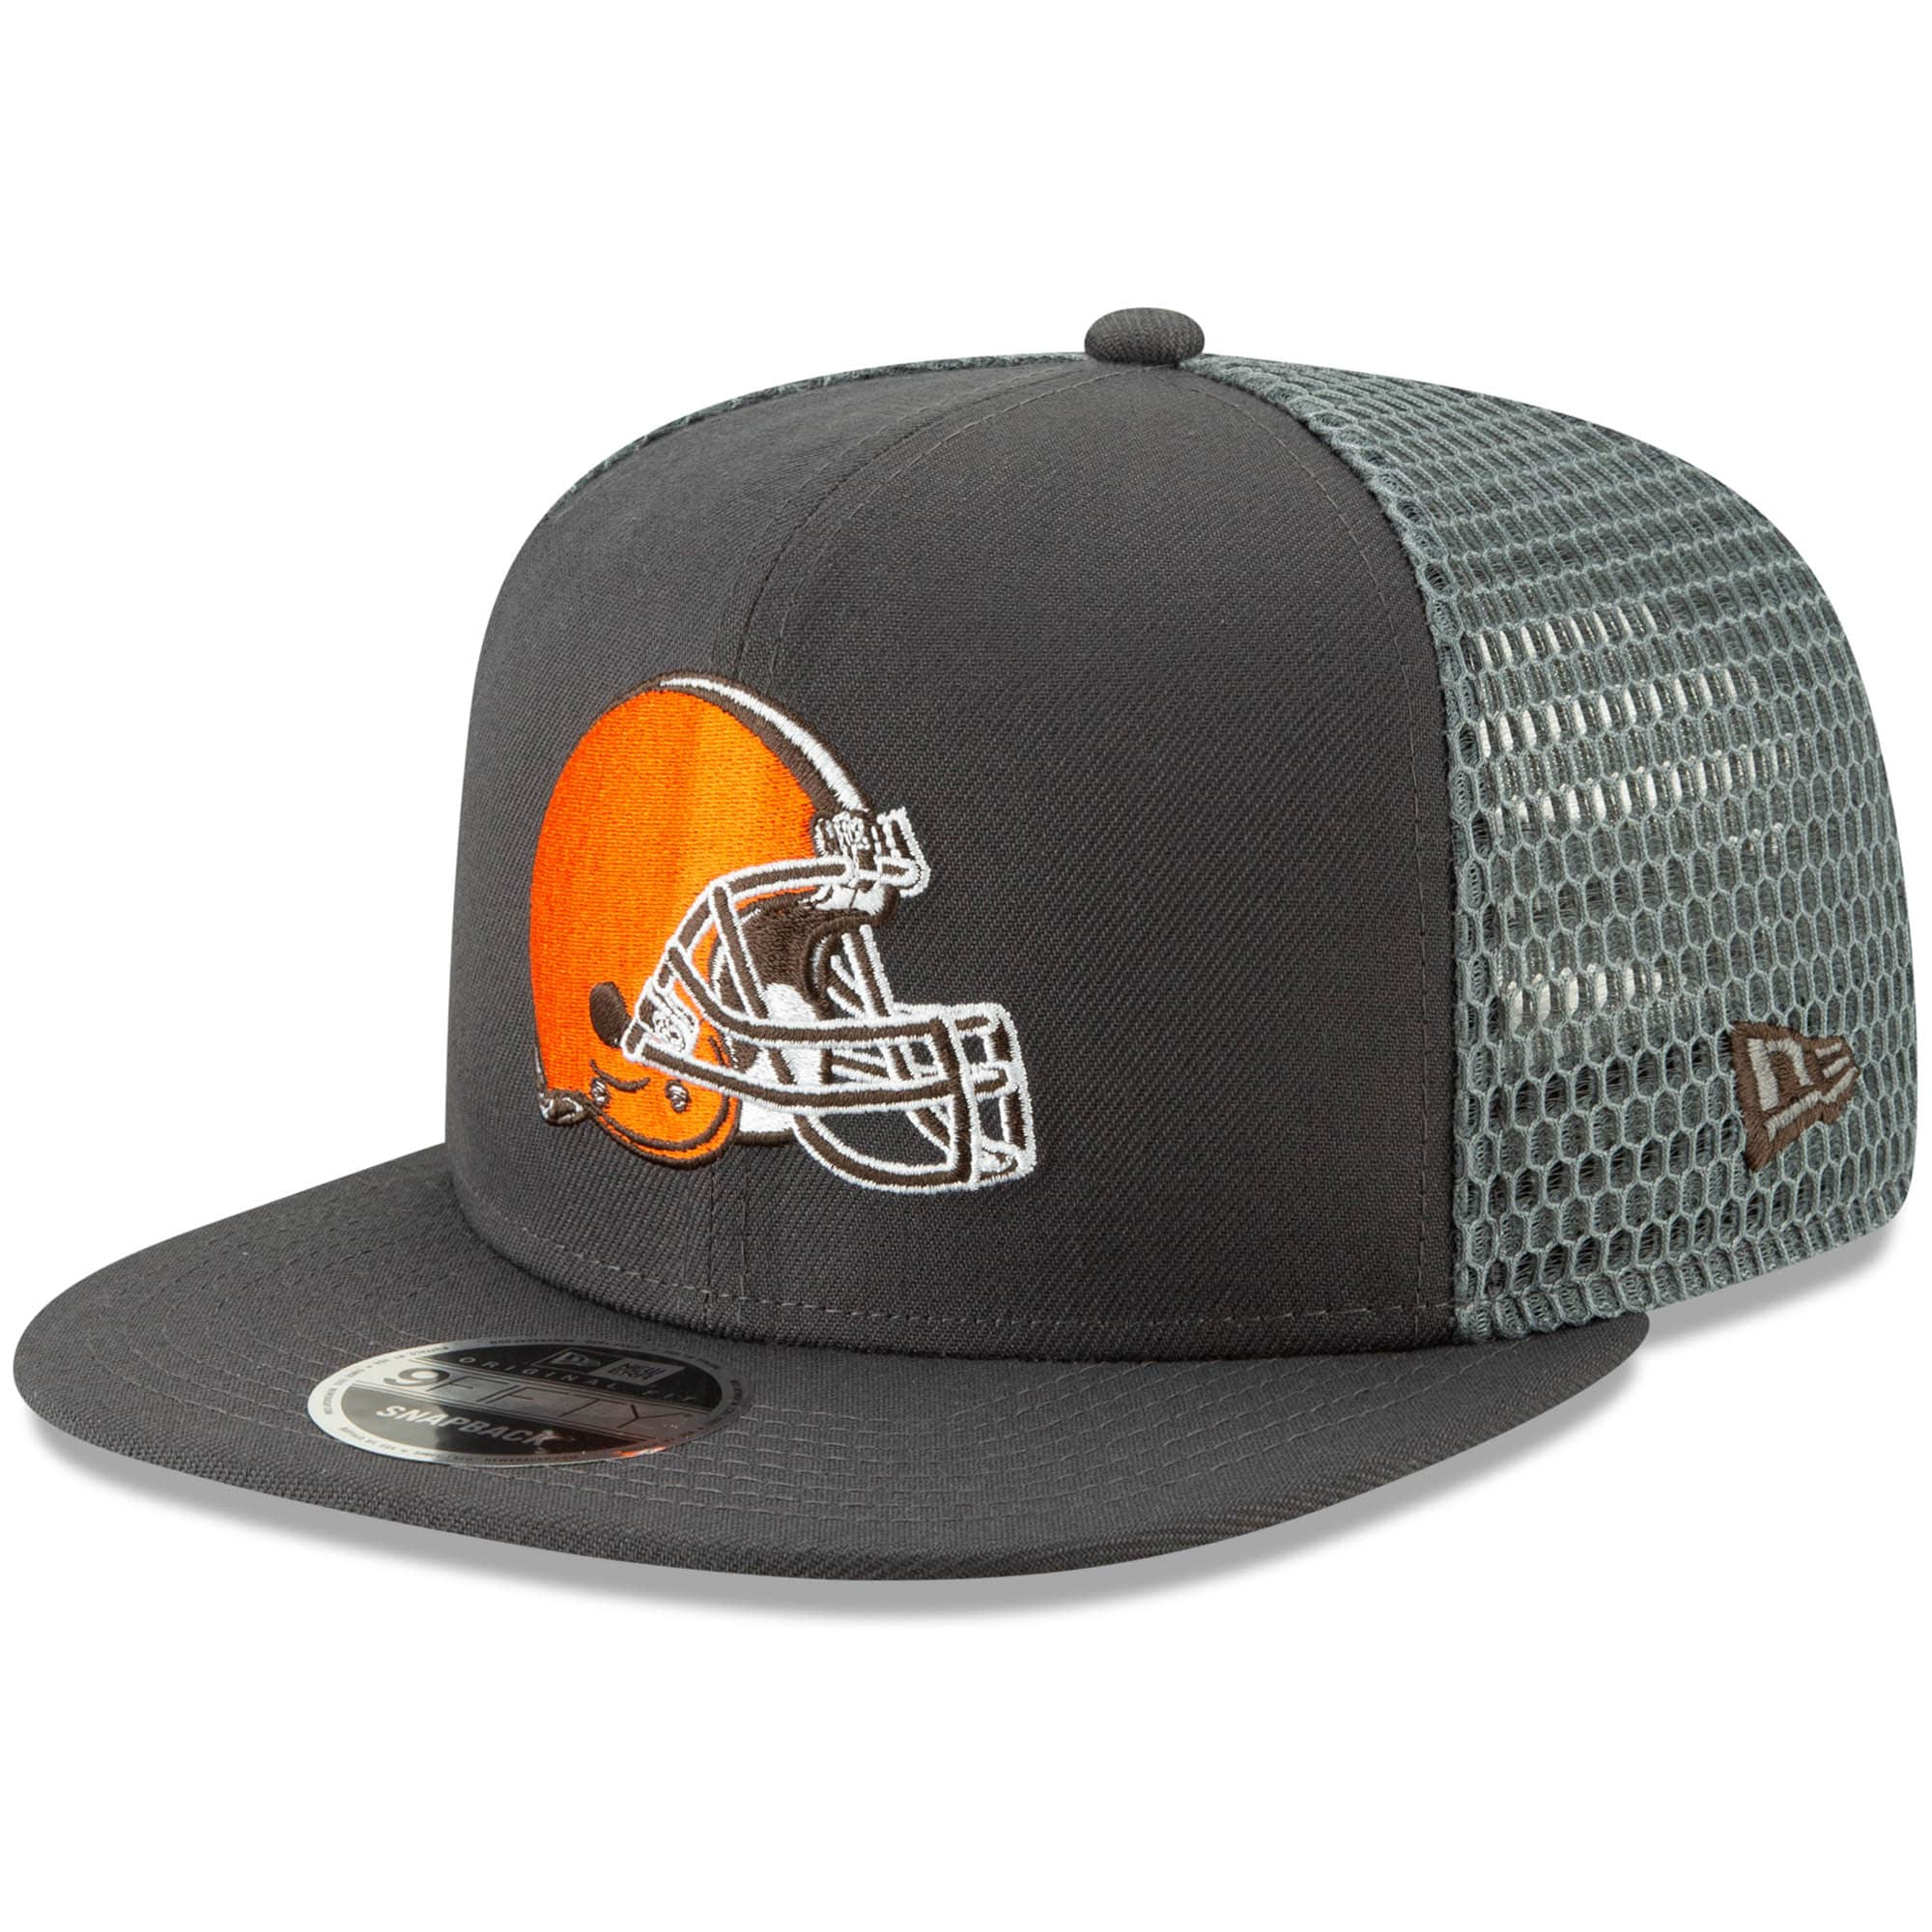 Cleveland Browns New Era Mesh Fresh 9FIFTY Adjustable Snapback Hat - Graphite